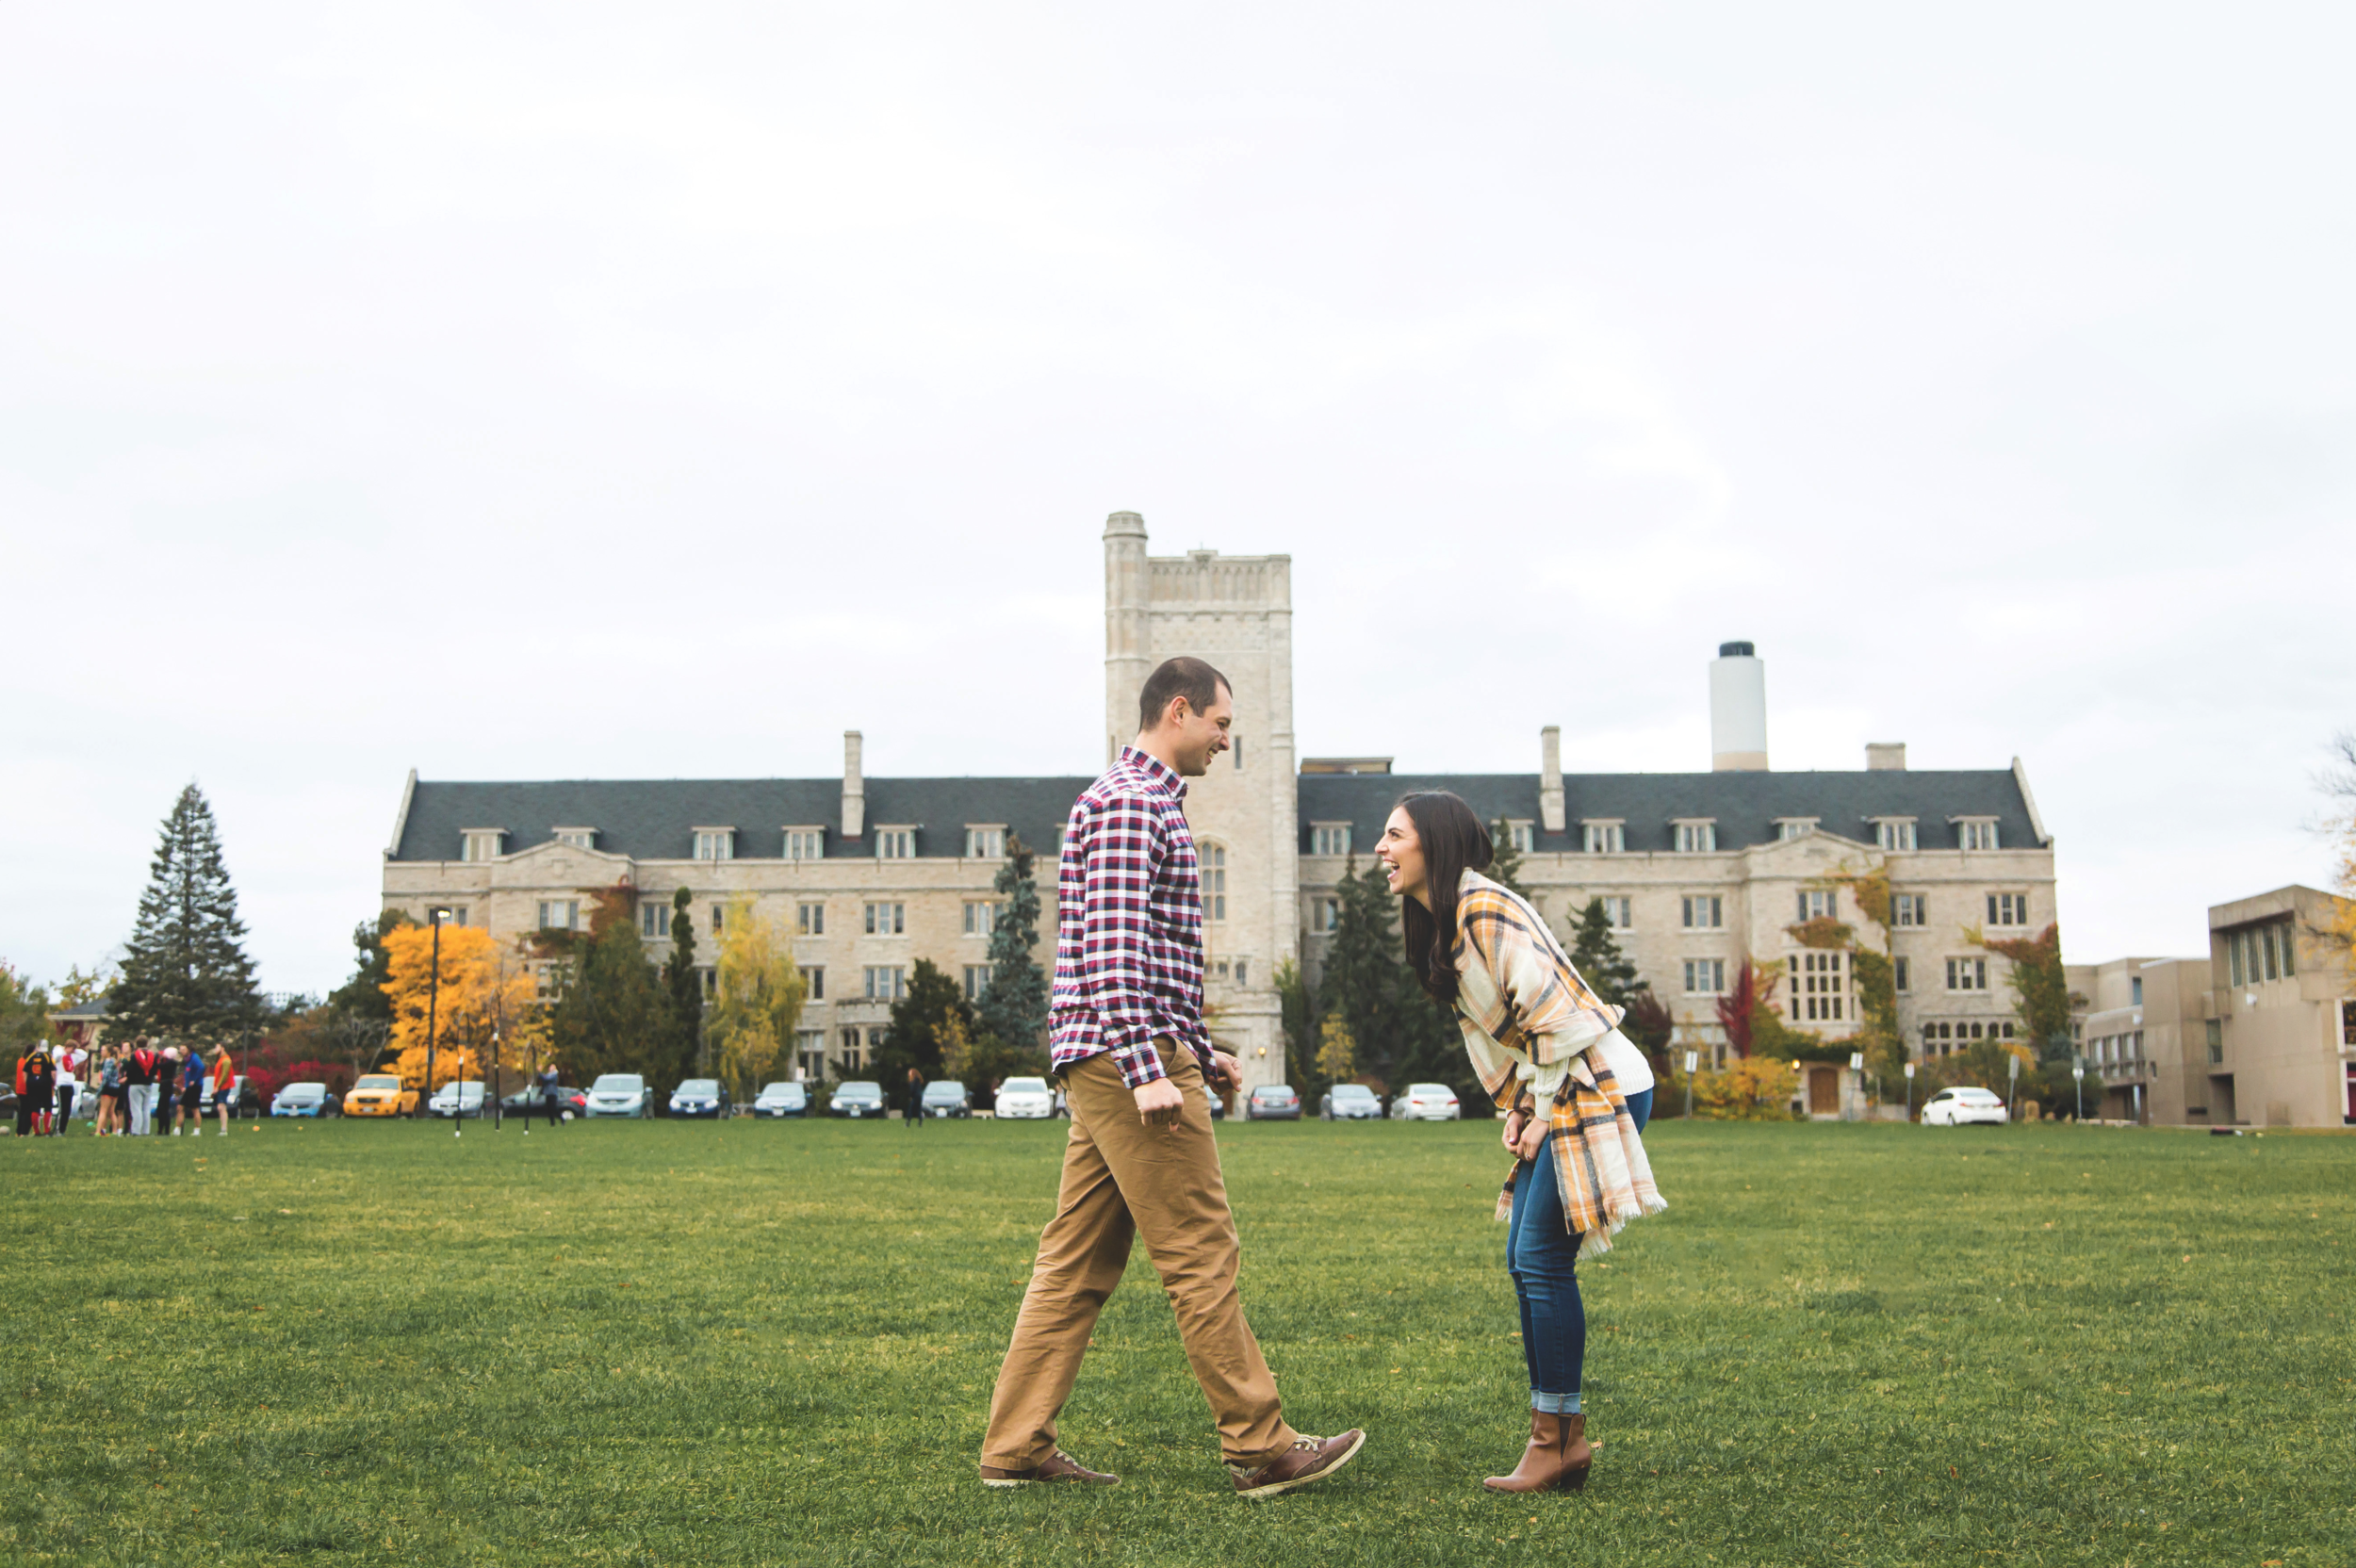 Engagement-Photography-Guelph-University-Campus-Hamilton-Burlington-Oakville-Niagara-Toronto-Wedding-Photographer-Photo-Image-20.png